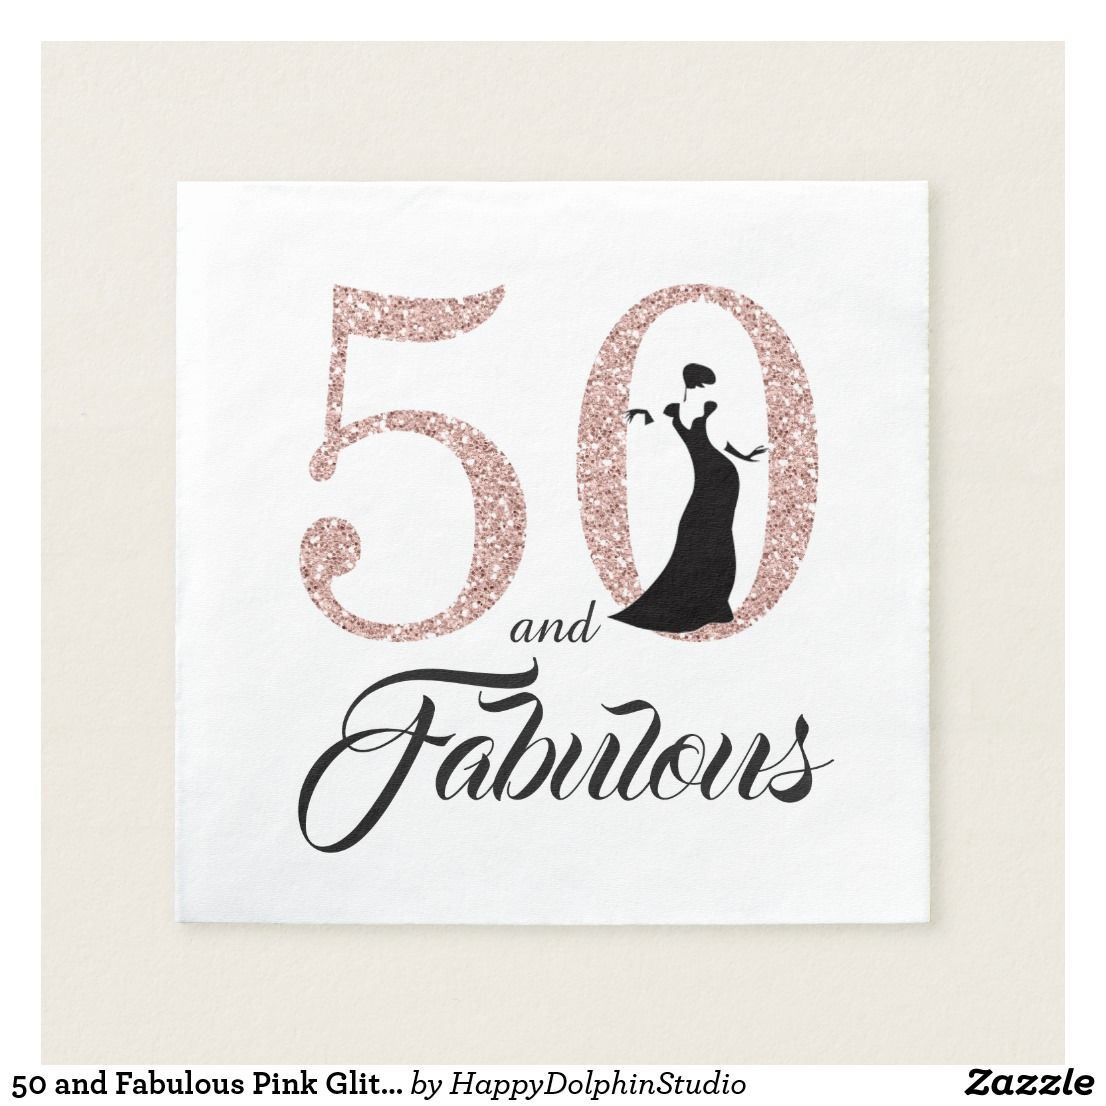 50 and Fabulous Pink Glitter 50th Birthday Party Napkins | Zazzle.com